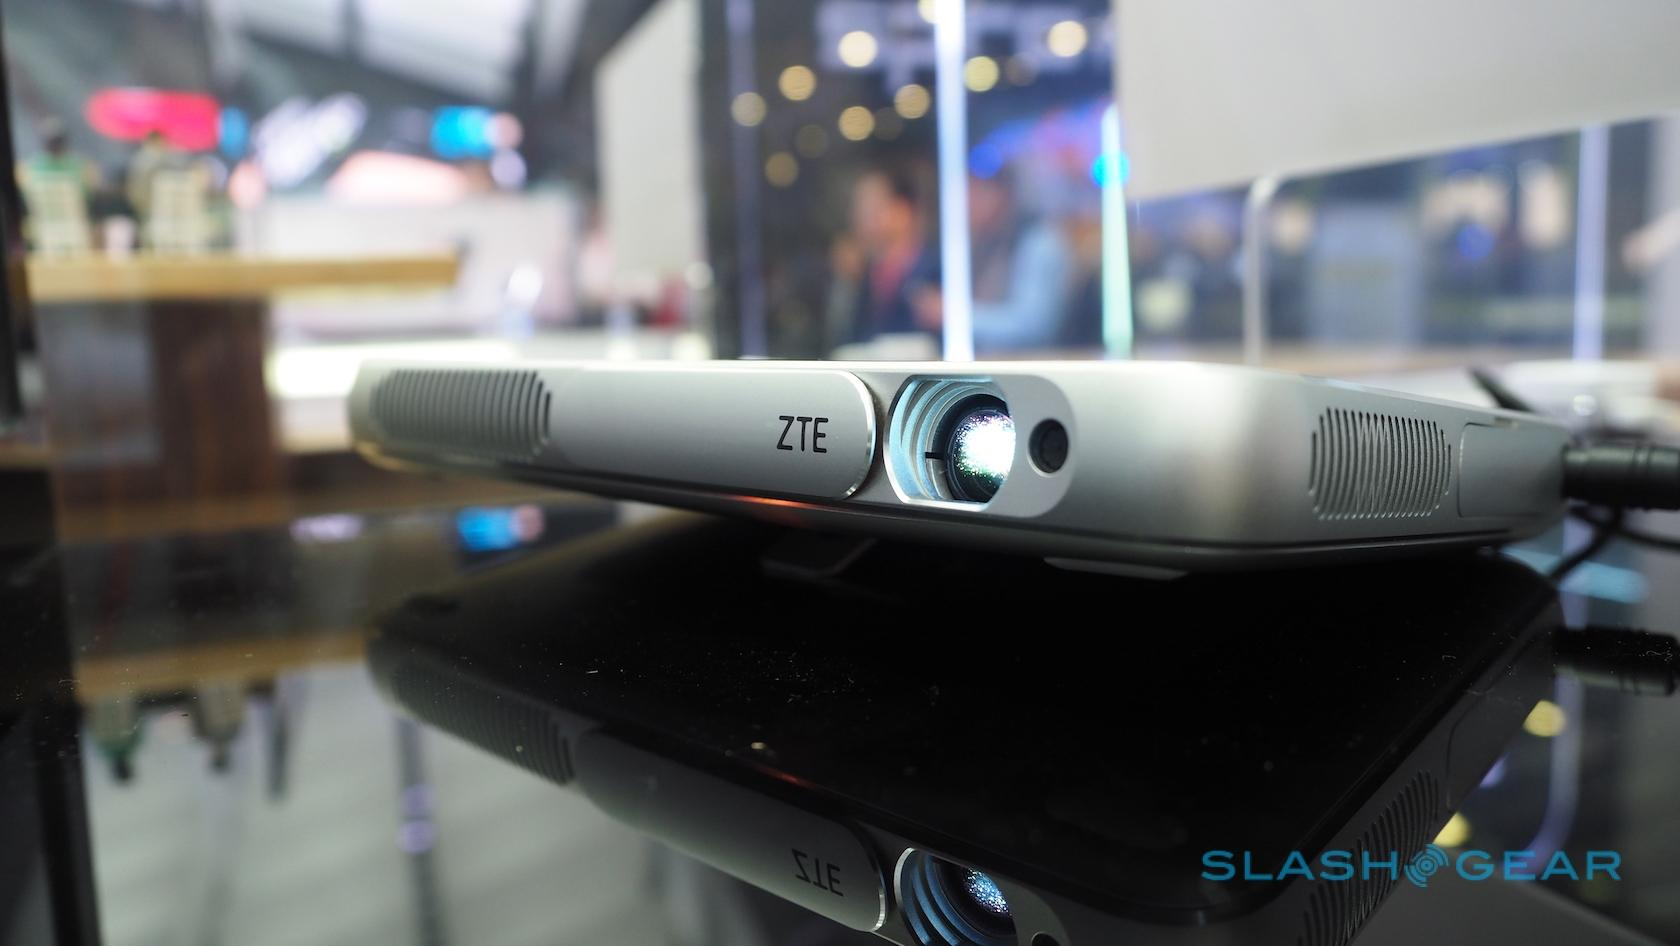 zte-spro-plus-projector-tablet-hands-on-sg-3